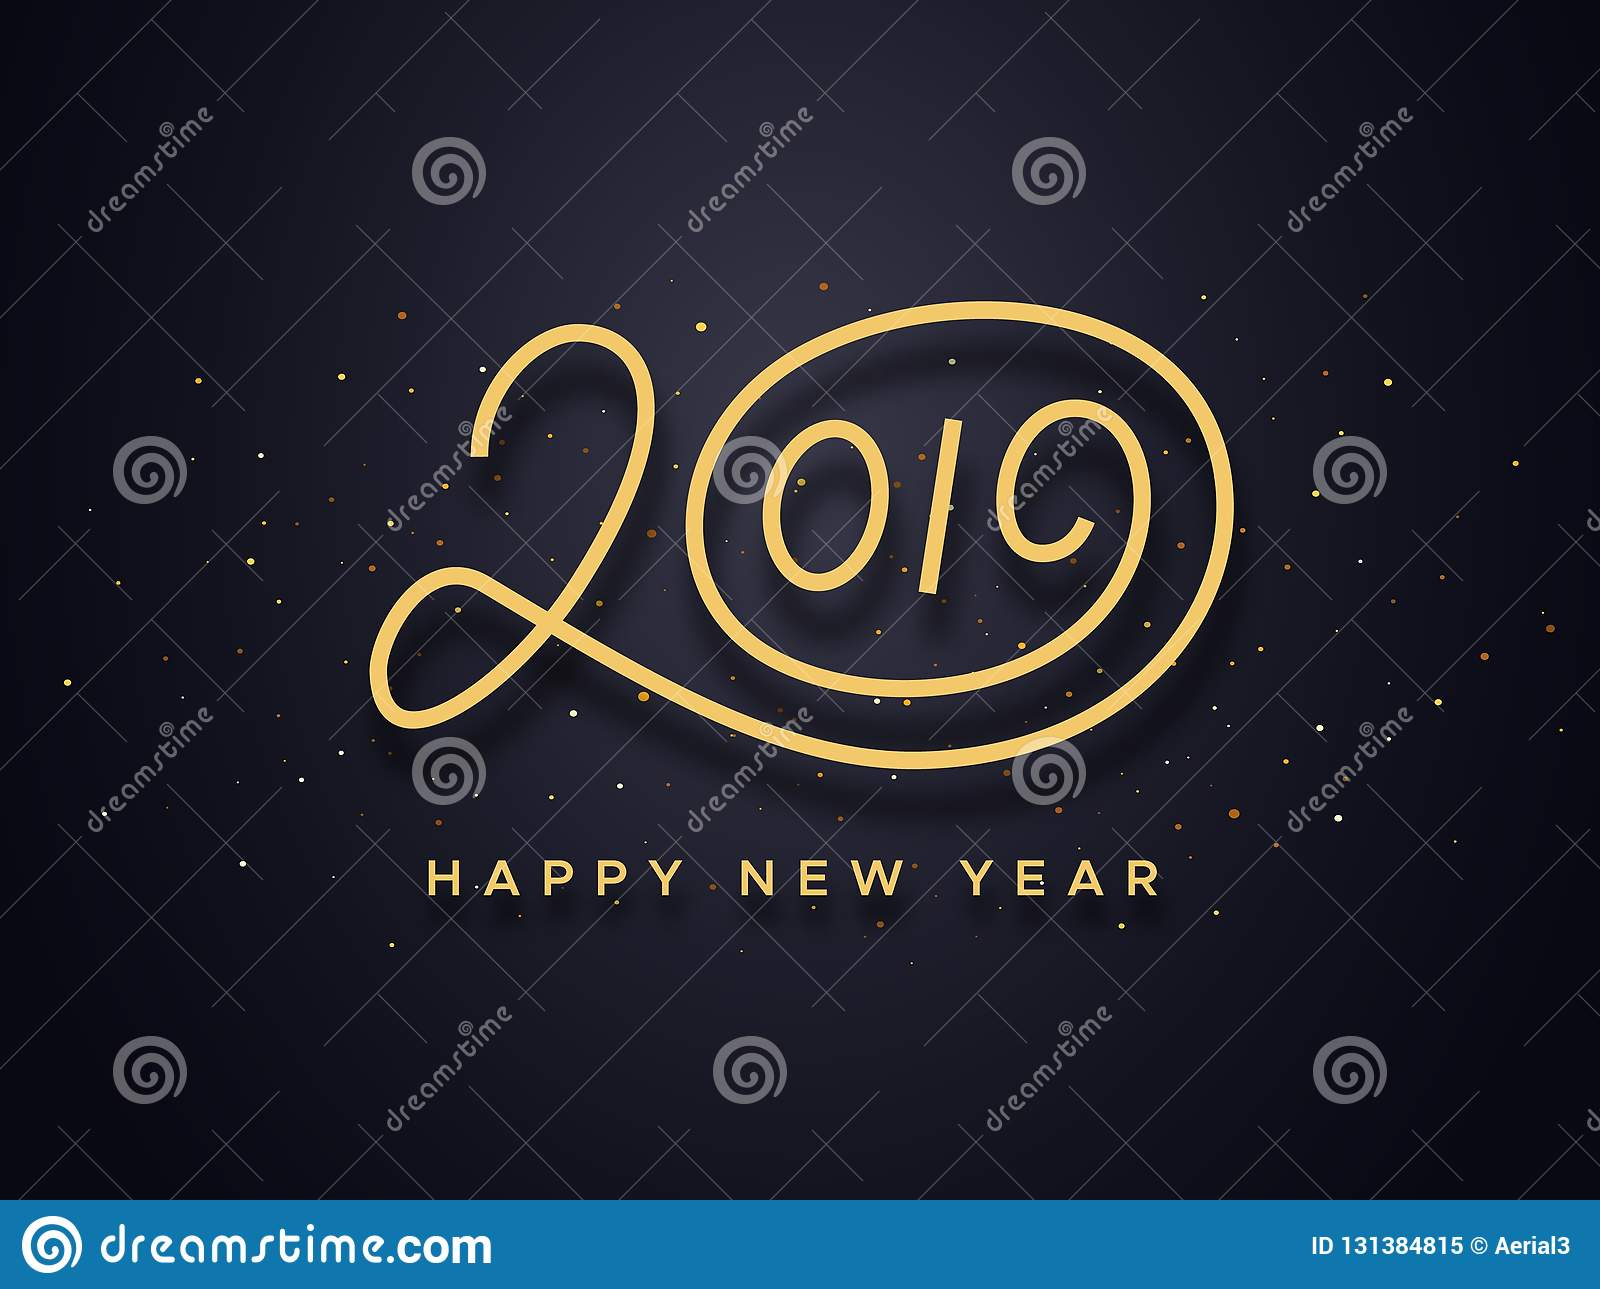 happy new year 2019 wishes typography text and gold confetti on luxury black background premium vector illustration with lettering for winter holidays